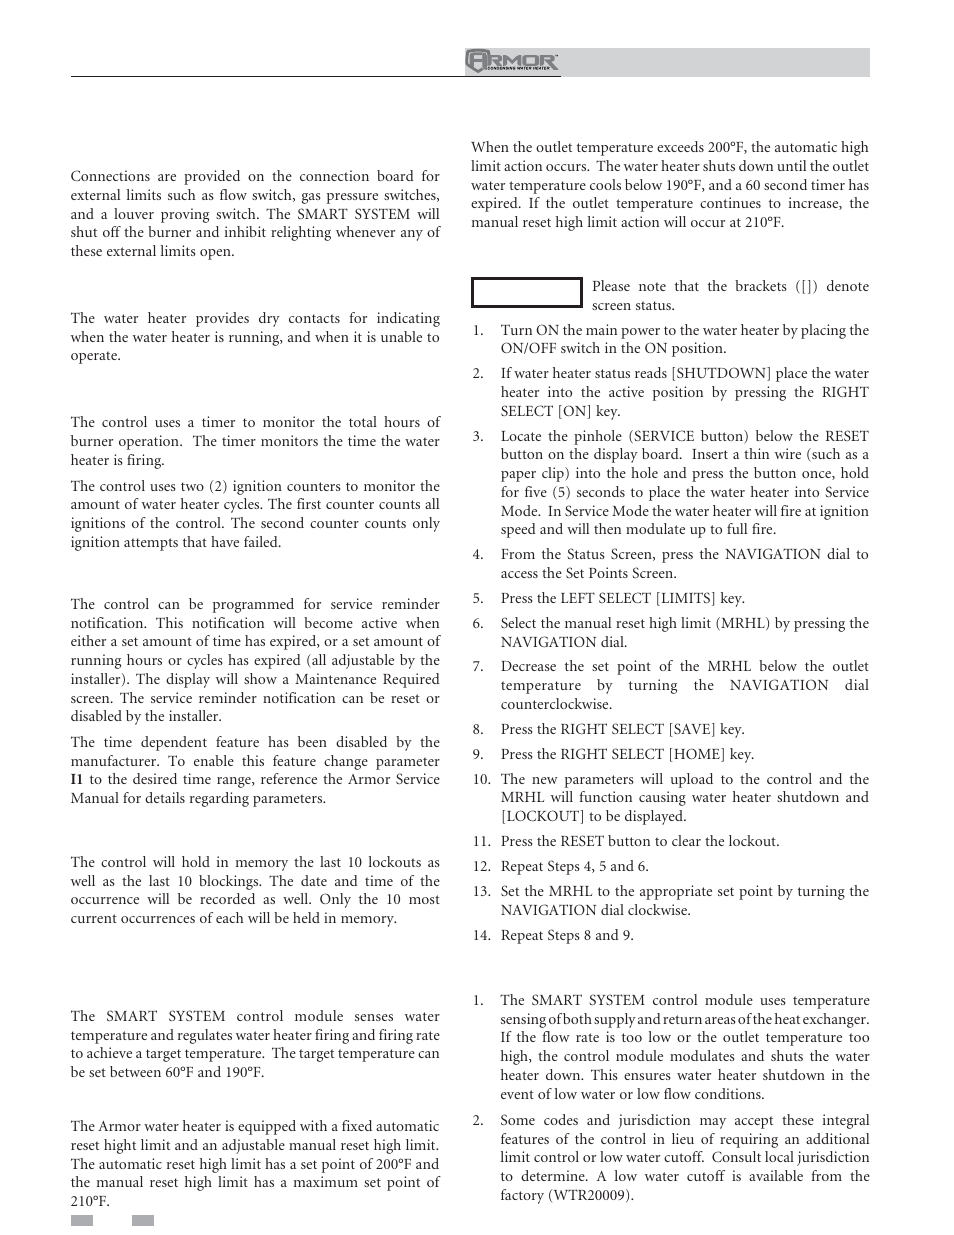 Operating information | Lochinvar ARMOR 151 User Manual | Page 60 / 76